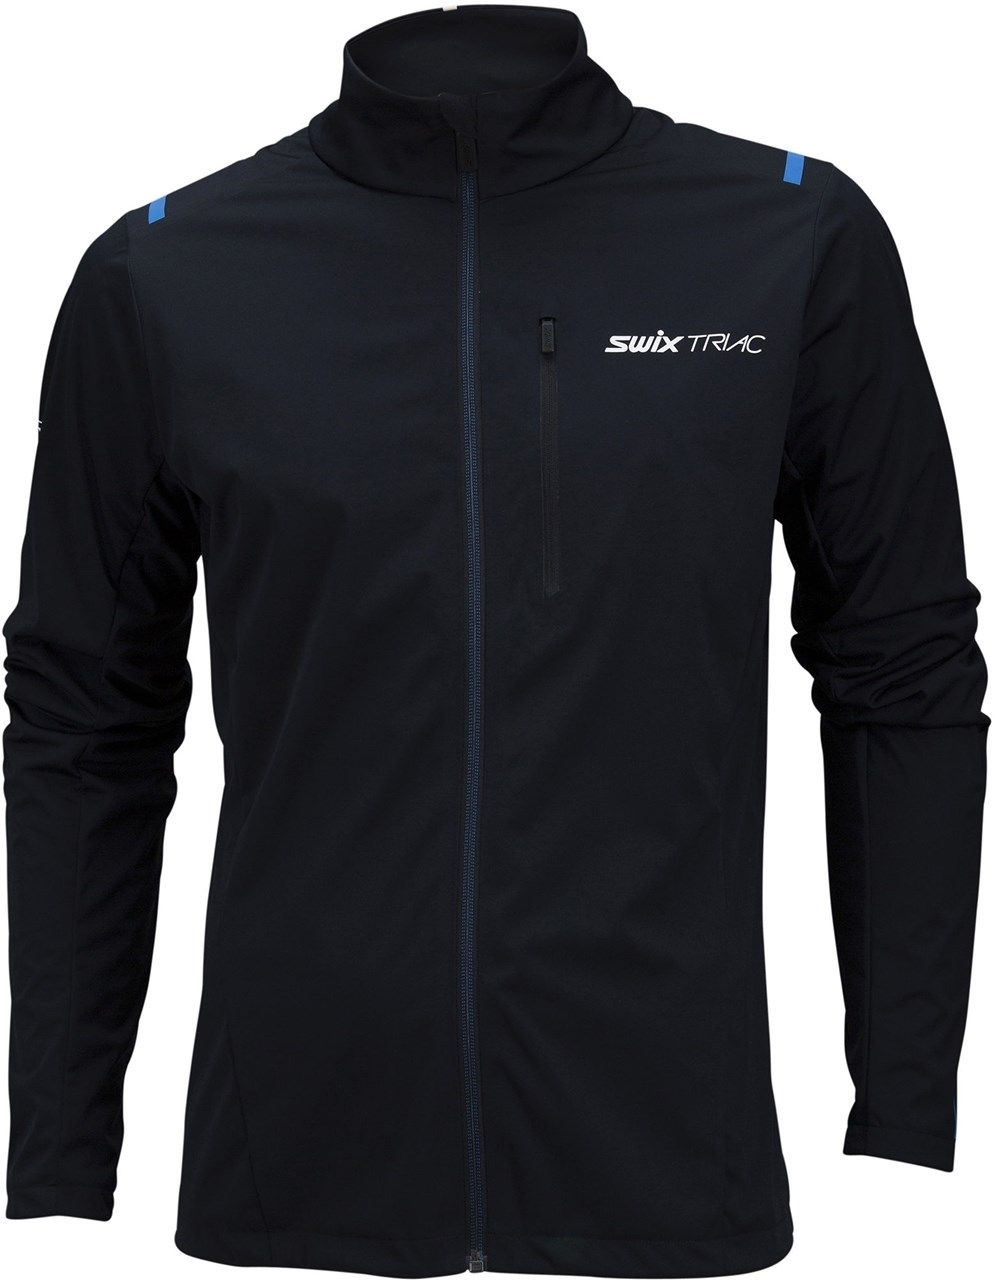 Swix Triac 3.0 jacket M - black XL